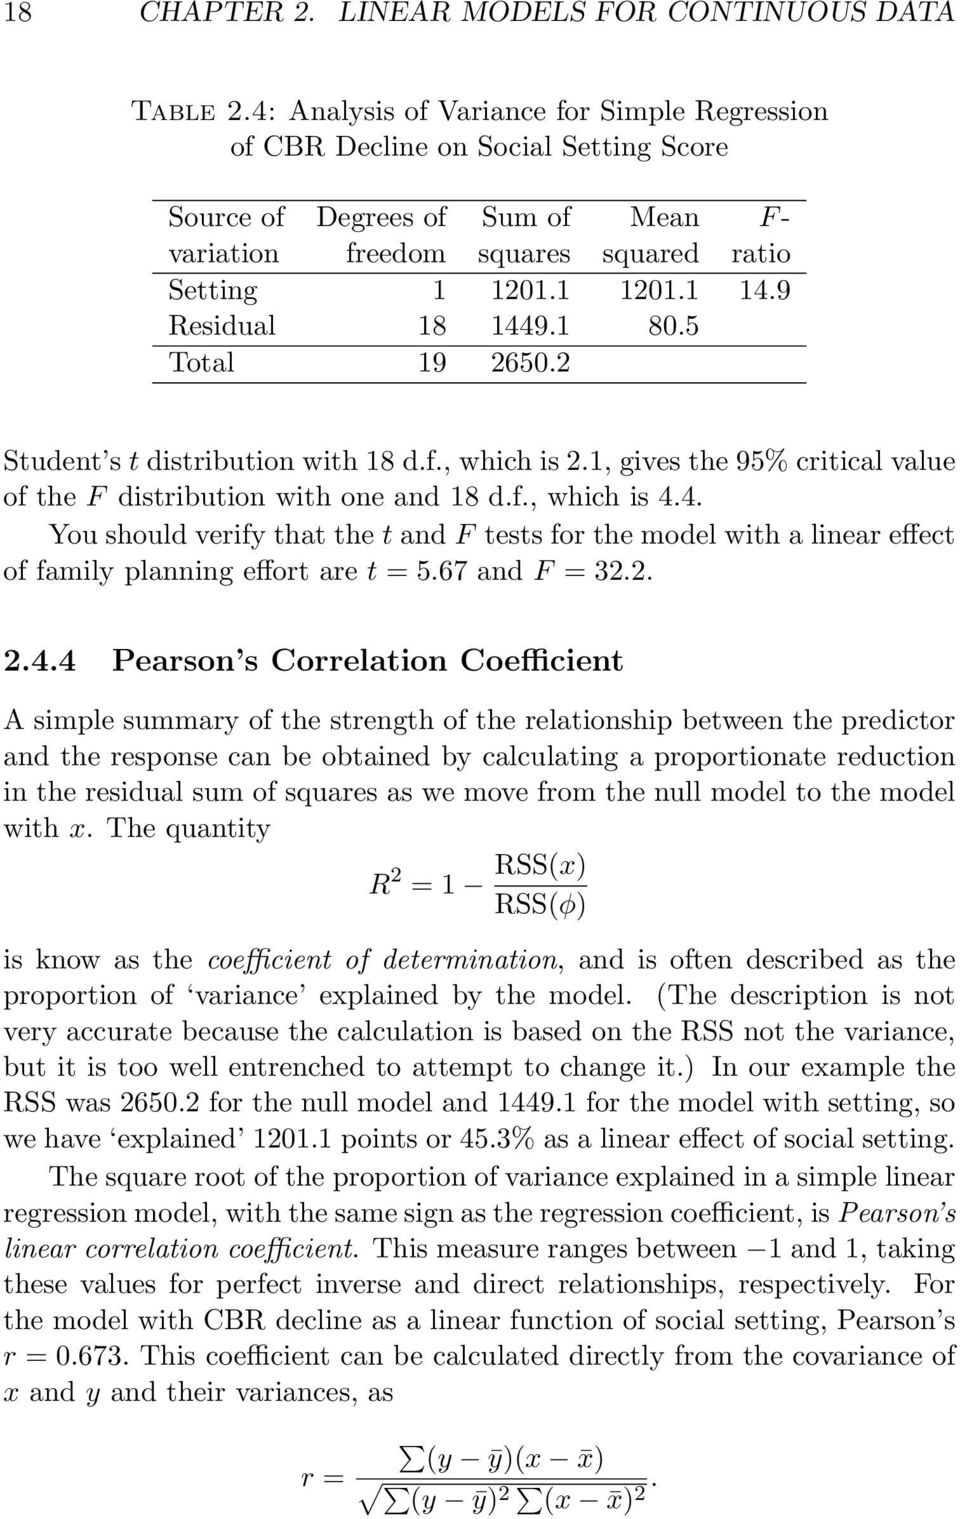 9 Residual 18 1449.1 80.5 Total 19 2650.2 Student s t distribution with 18 d.f., which is 2.1, gives the 95% critical value of the F distribution with one and 18 d.f., which is 4.4. You should verify that the t and F tests for the model with a linear effect of family planning effort are t = 5.